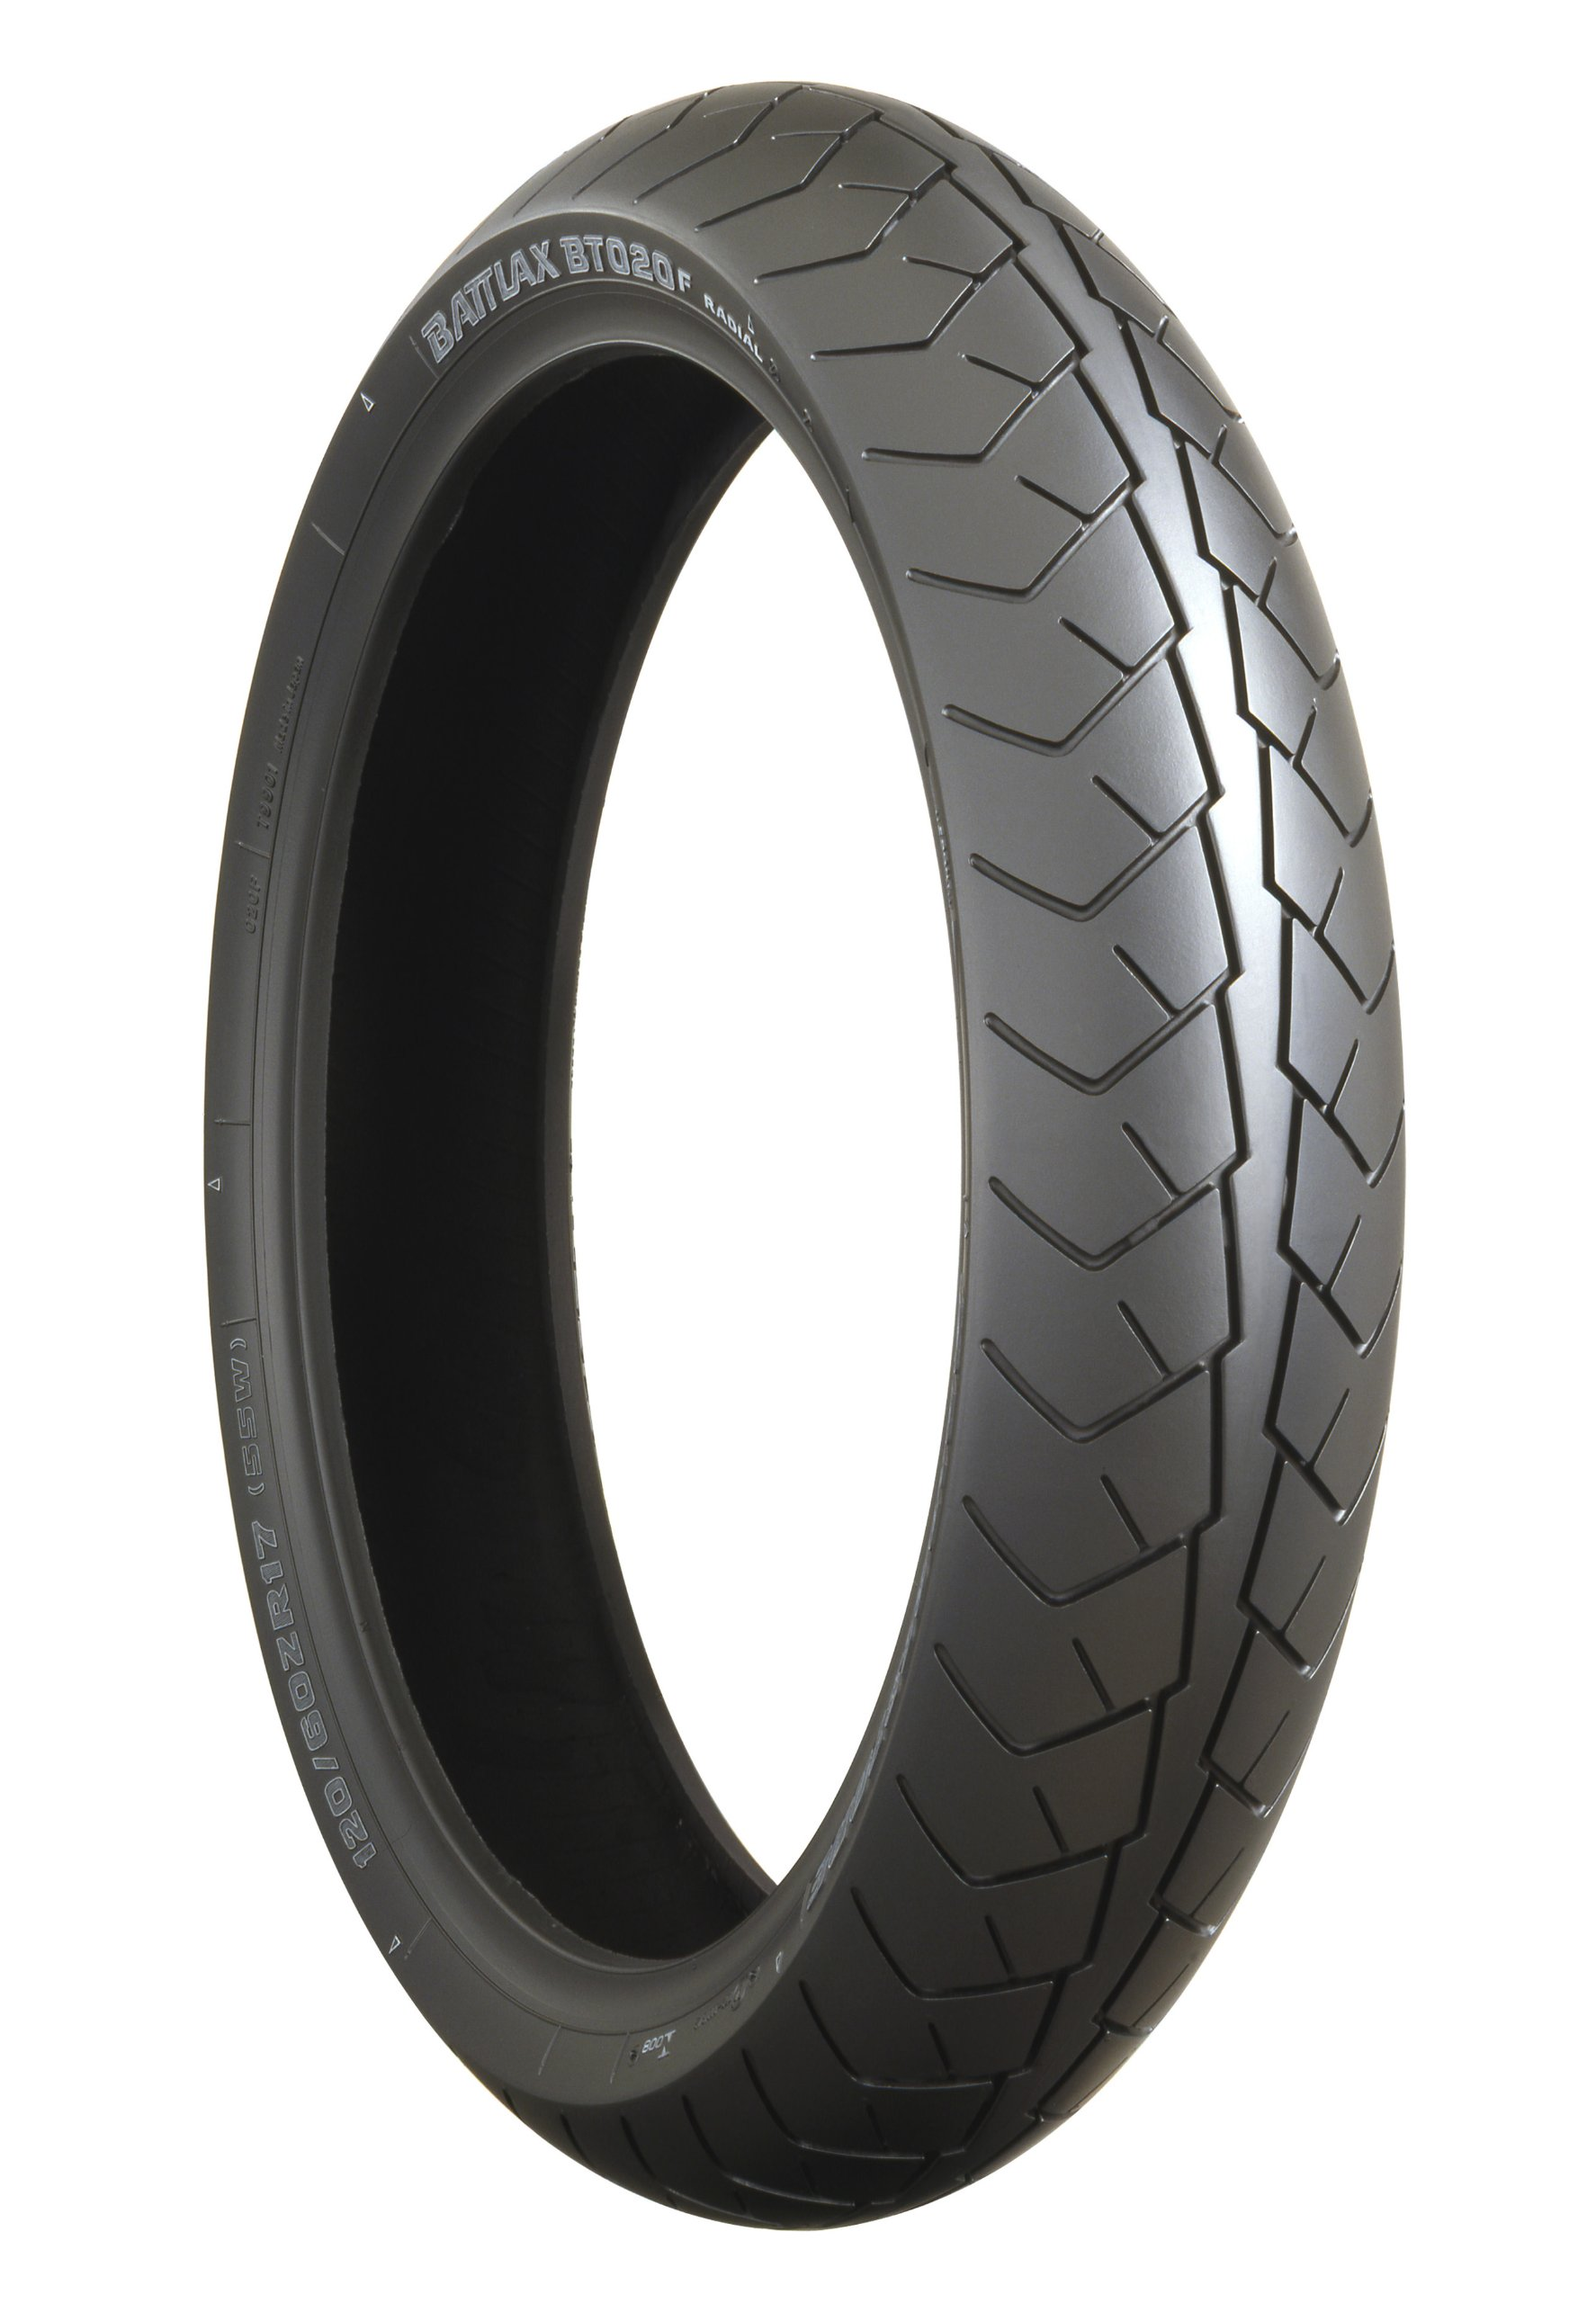 Bridgestone BATTLAX BT-020 Sport/Touring Front Motorcycle Tire 120/70-18